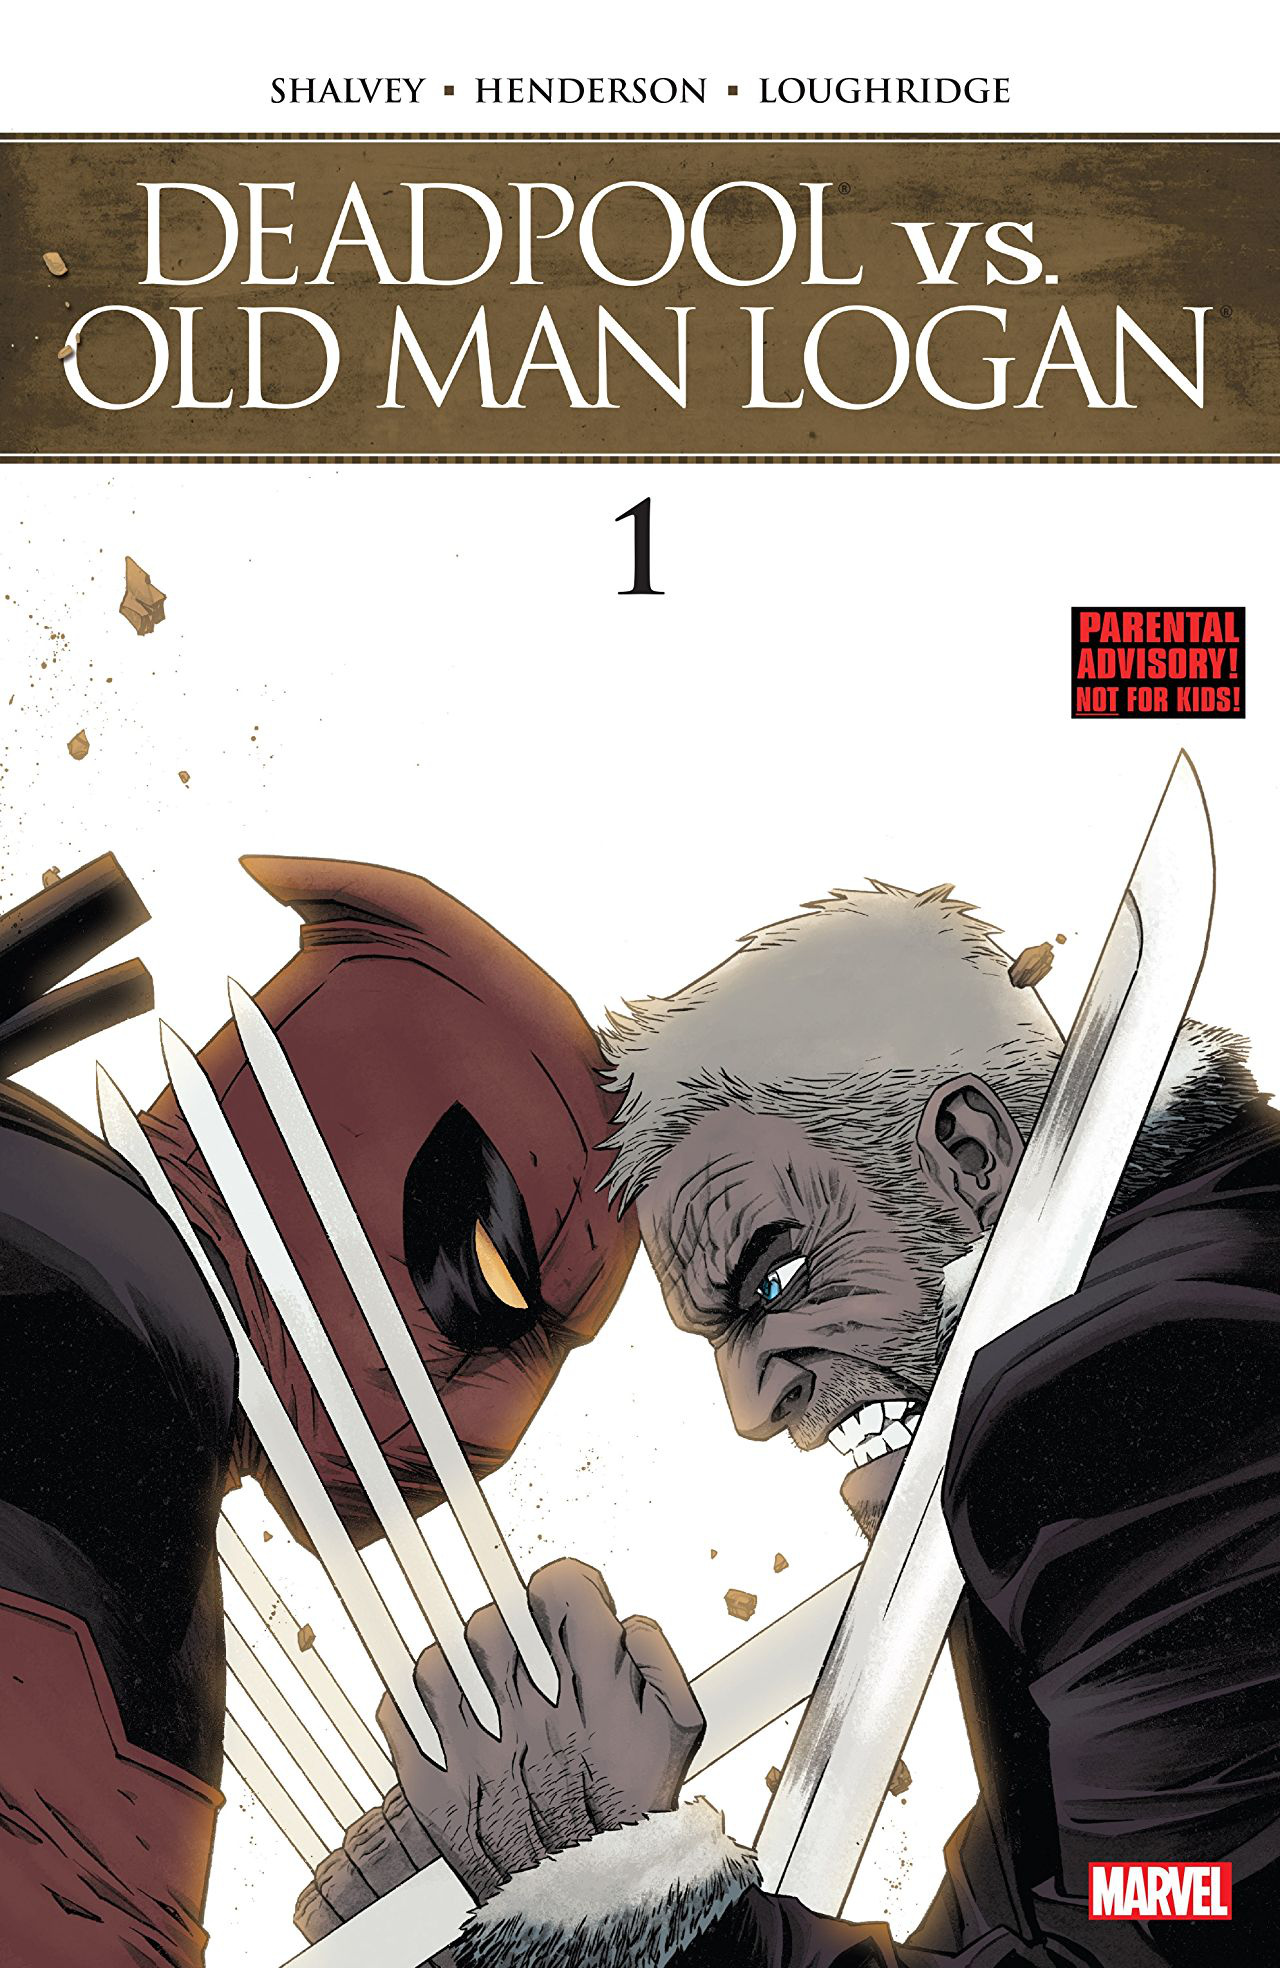 Deadpool Vs. Old Man LoganDeadpool Vs. Old Man Logan